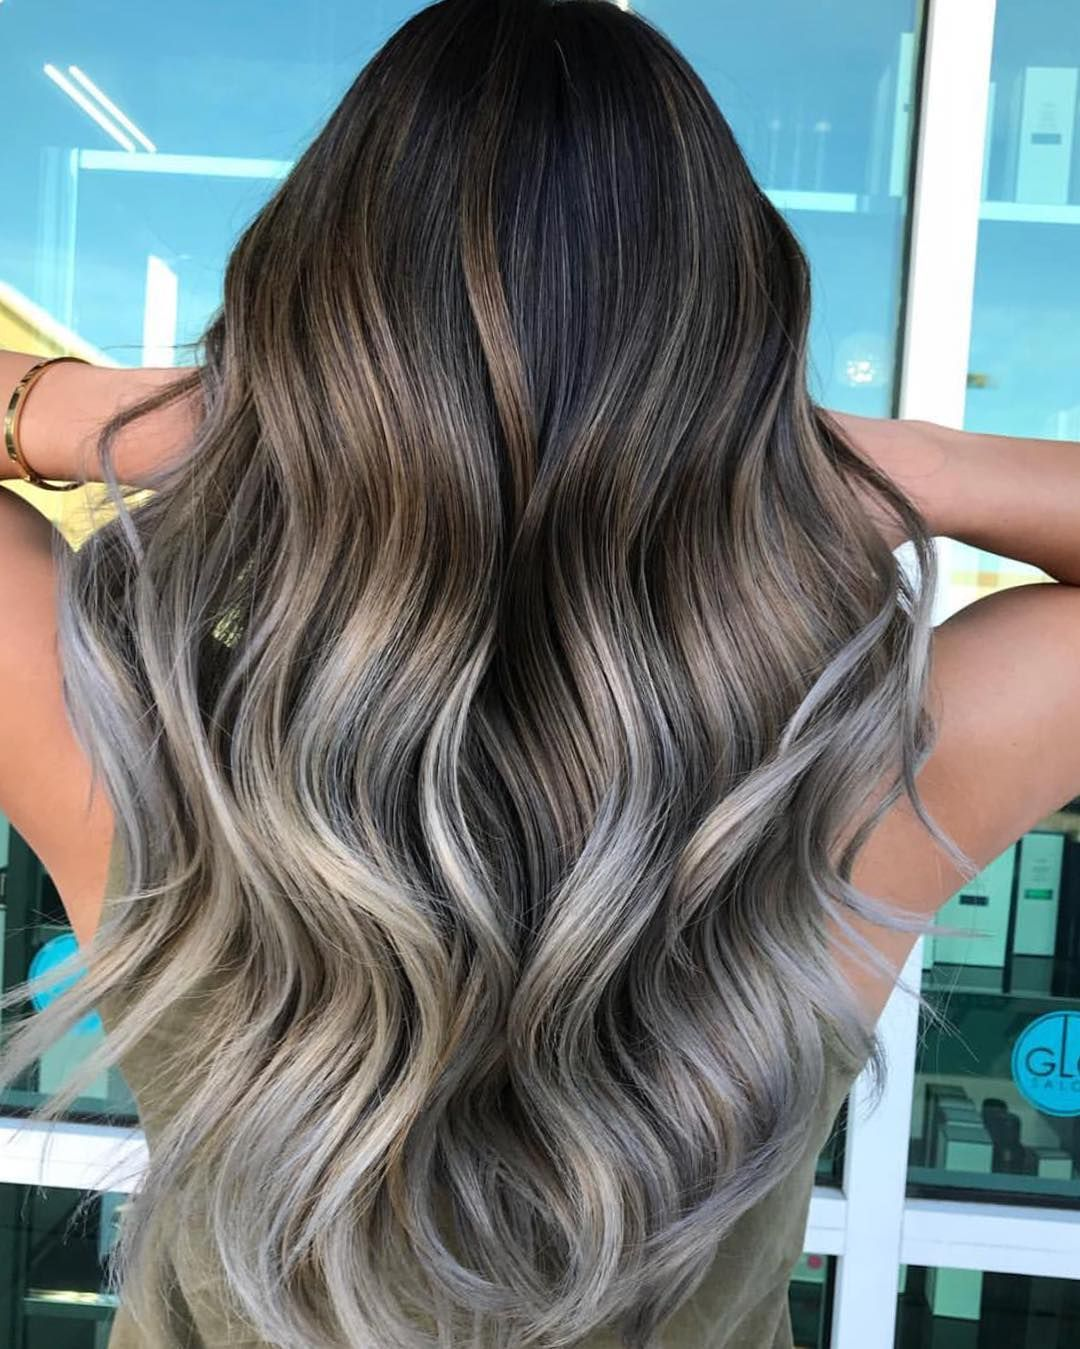 18 Balayage Hair Pictures You Should Take To Your Stylist ASAP ...